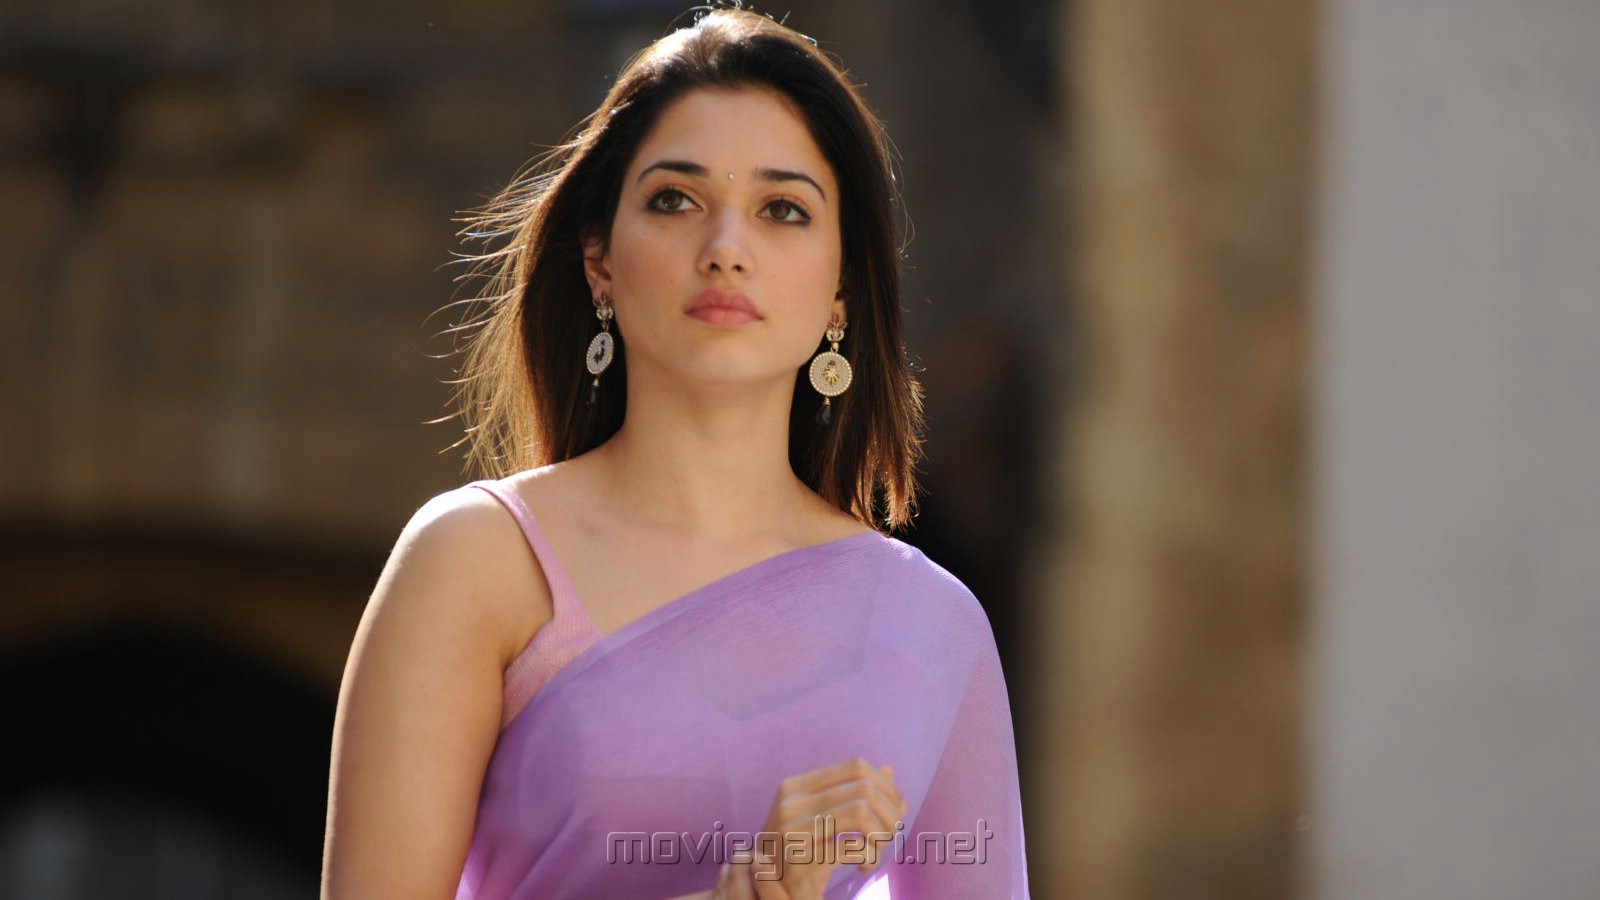 Tamanna Hd Saree Wallpaper: Tamanna Hd Images Download